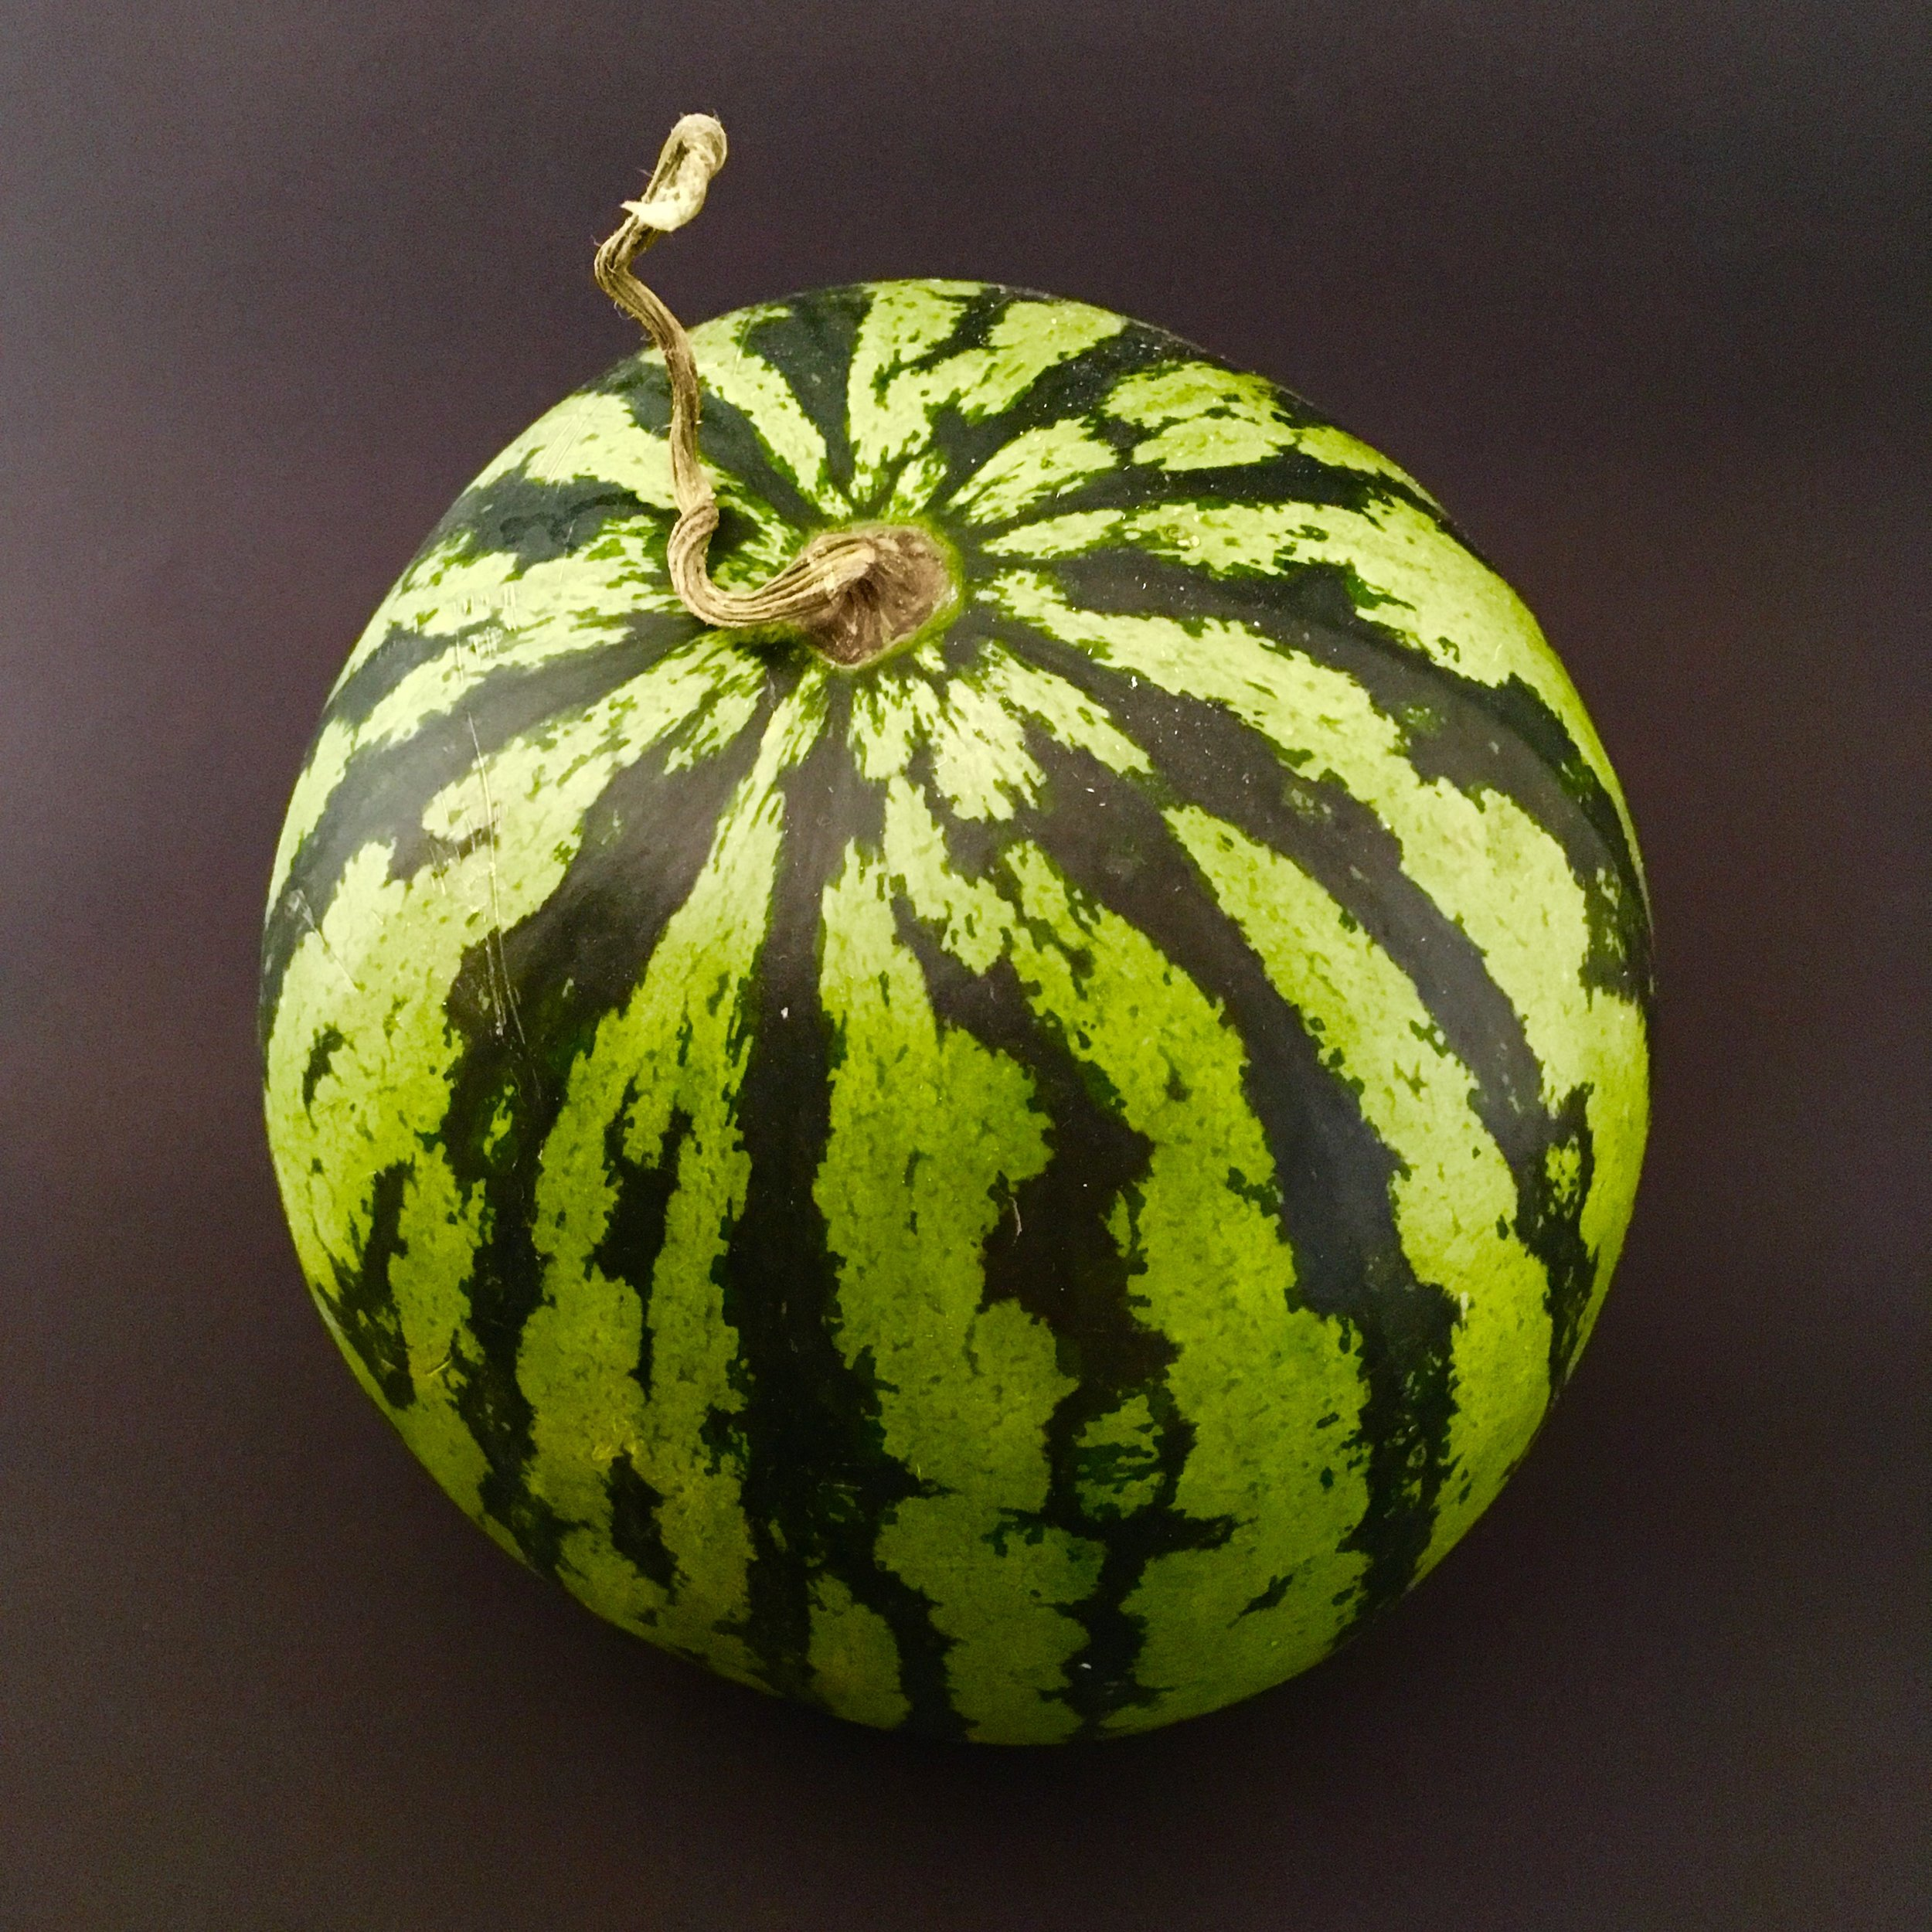 If someone would be able to turn the skin of a watermelon into leather, I would really love some shoes made out of that material.